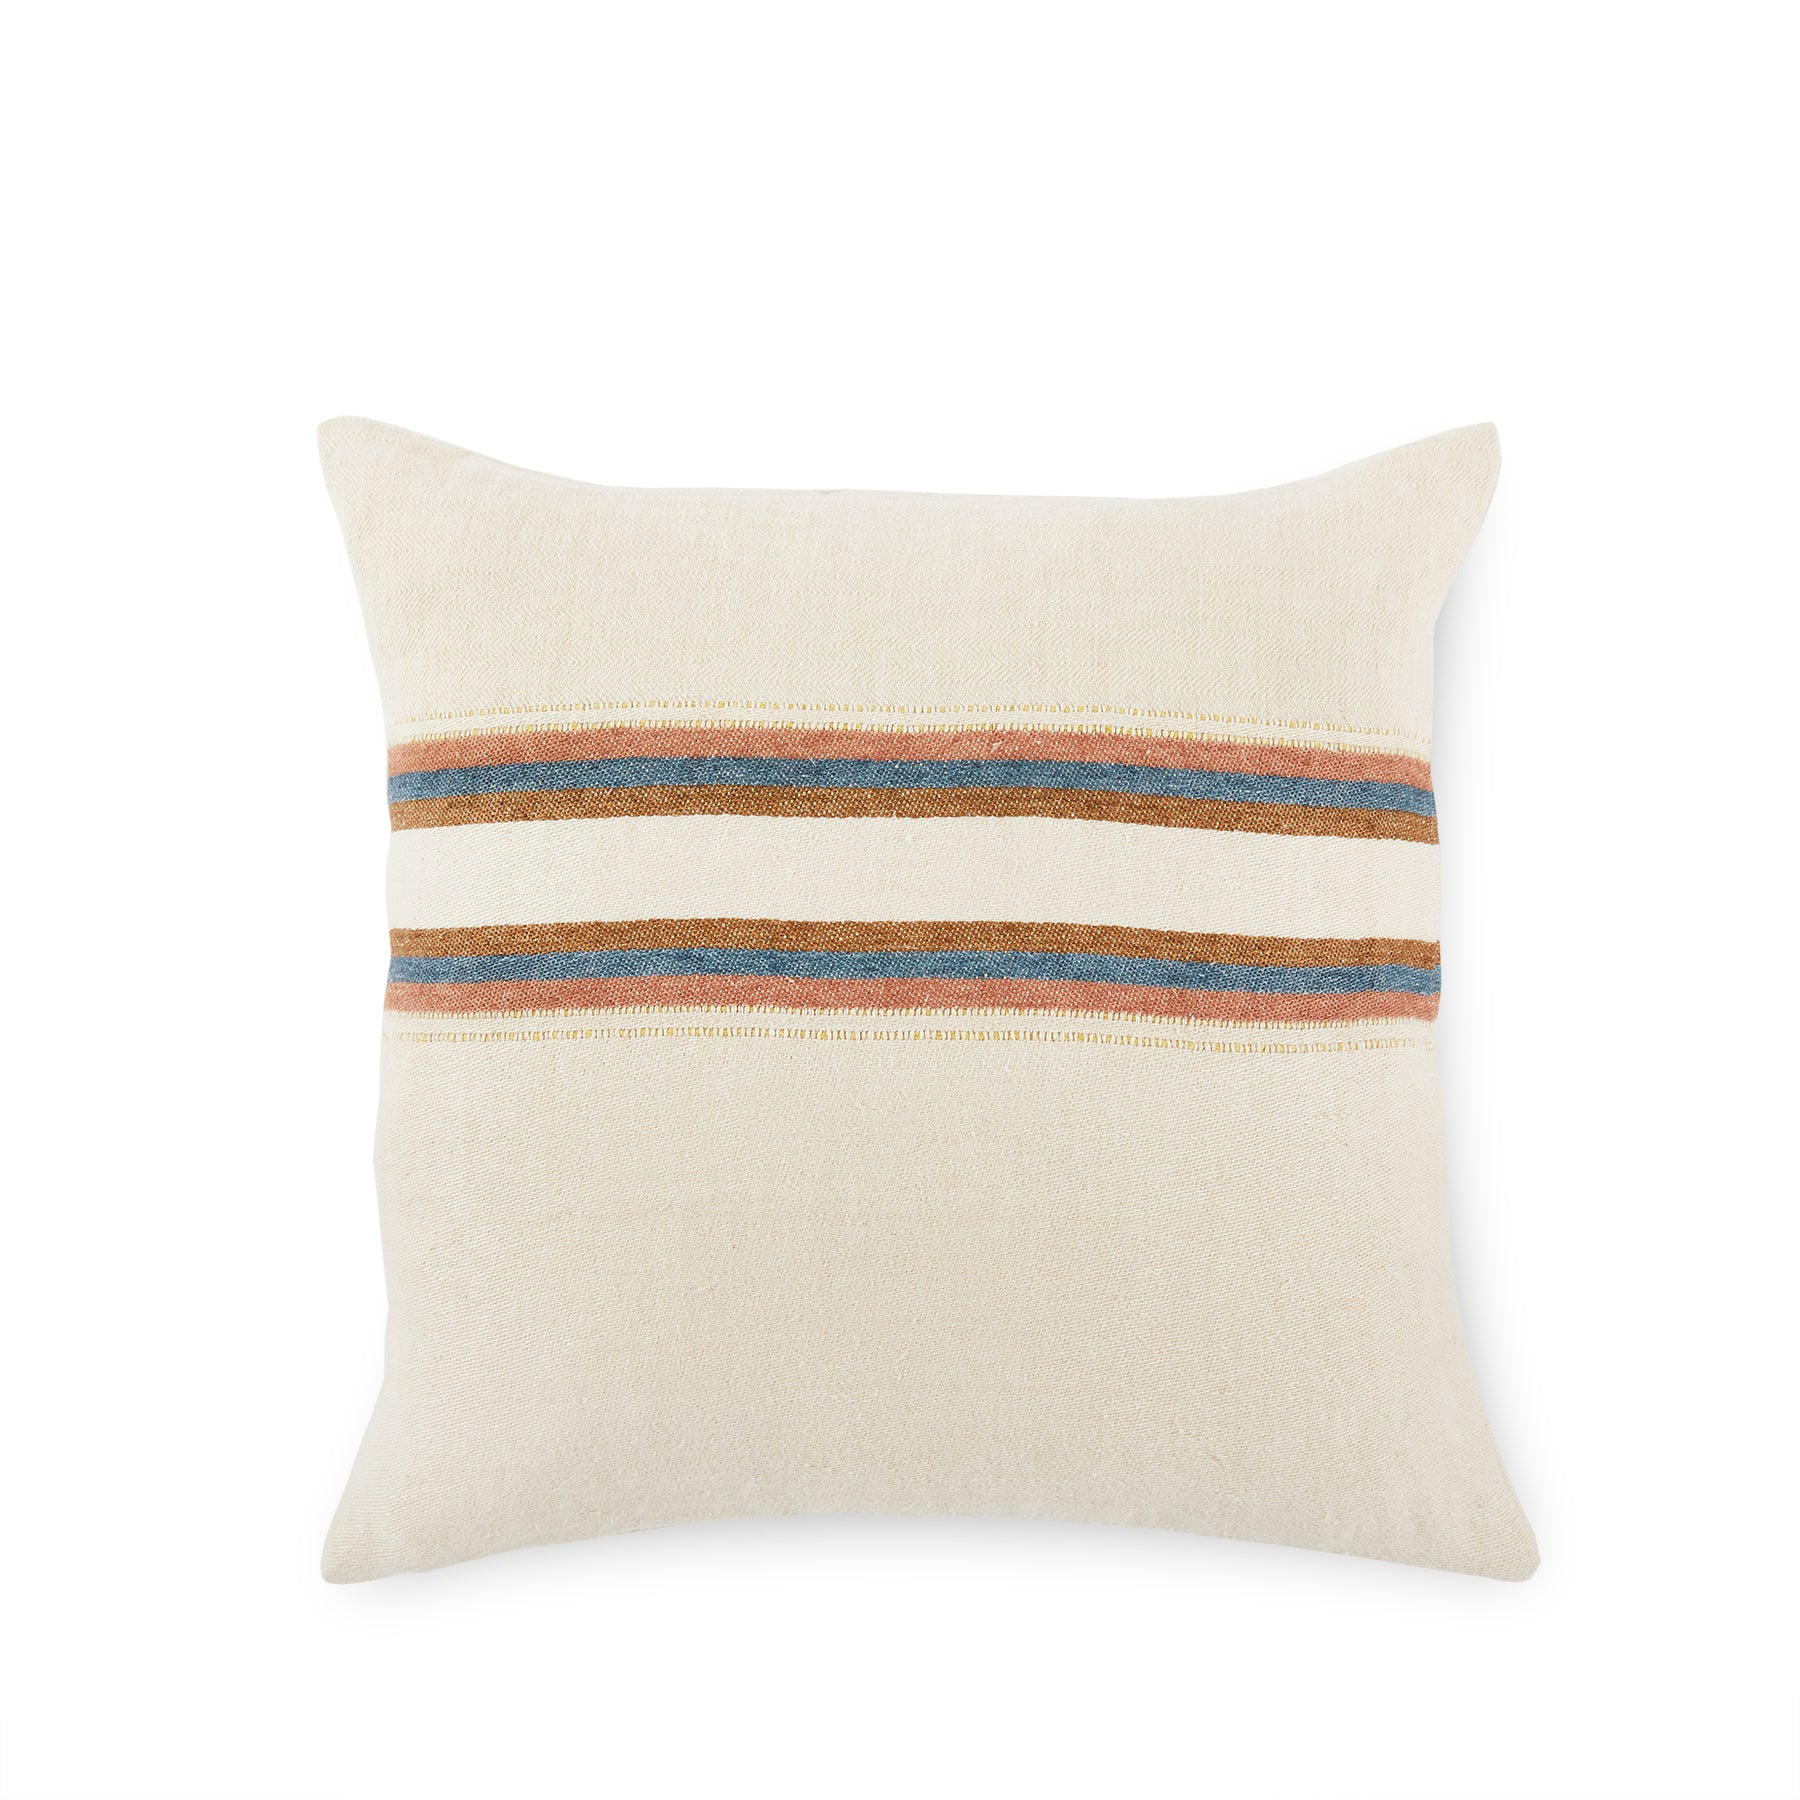 Belgian Pillow in Harlan Stripe Zoom Image 1